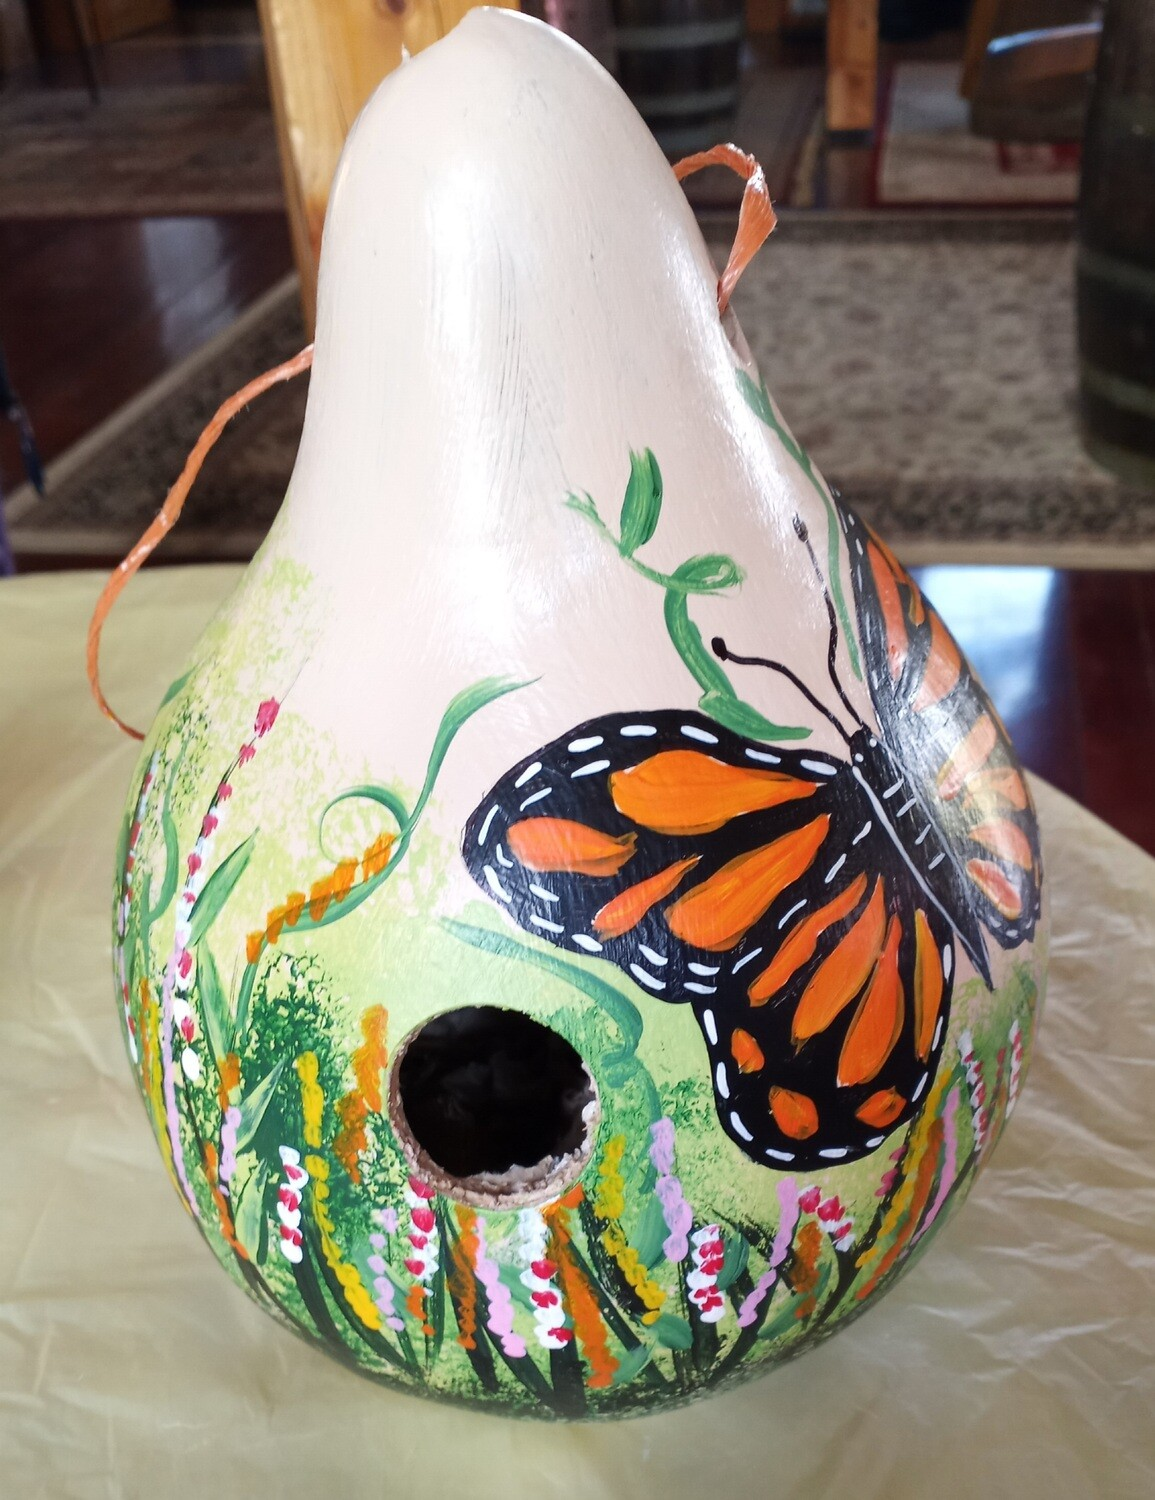 Birdhouse Gourd/Butterfly*May 15th*12pm